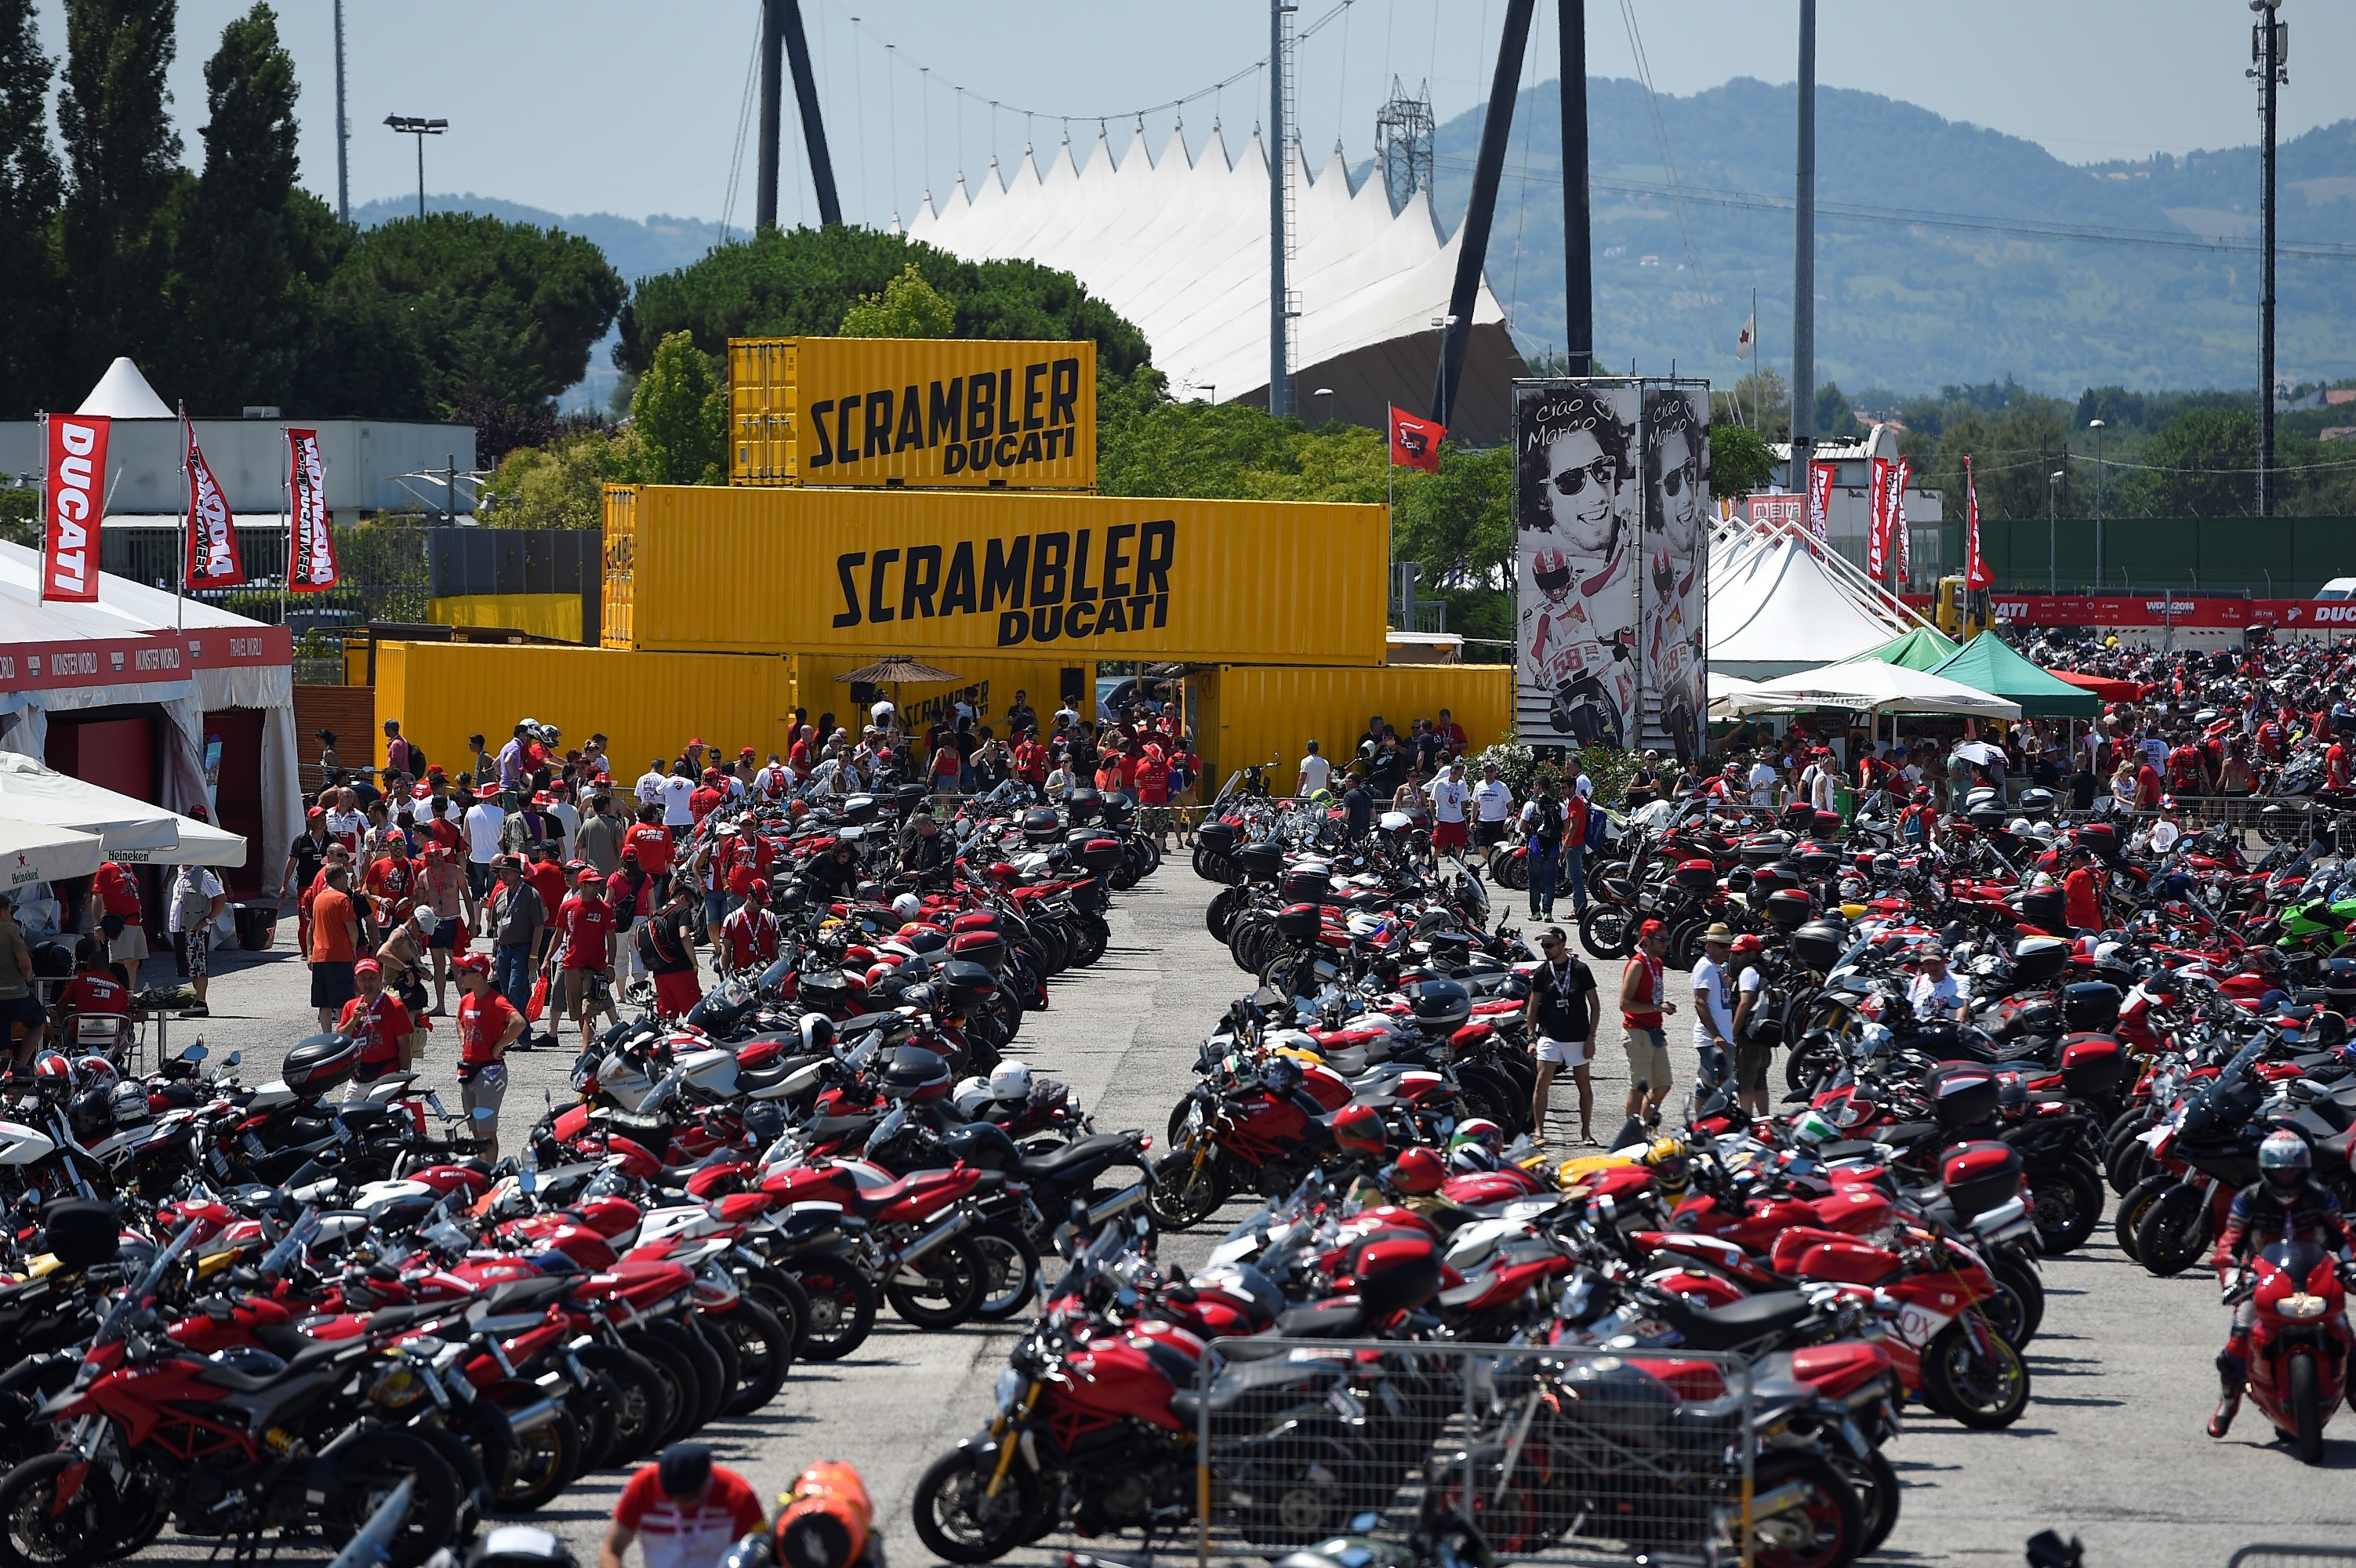 first-scrambler-rally-at-the-world-ducati-week-2016-casey-stoner-attending-too_1